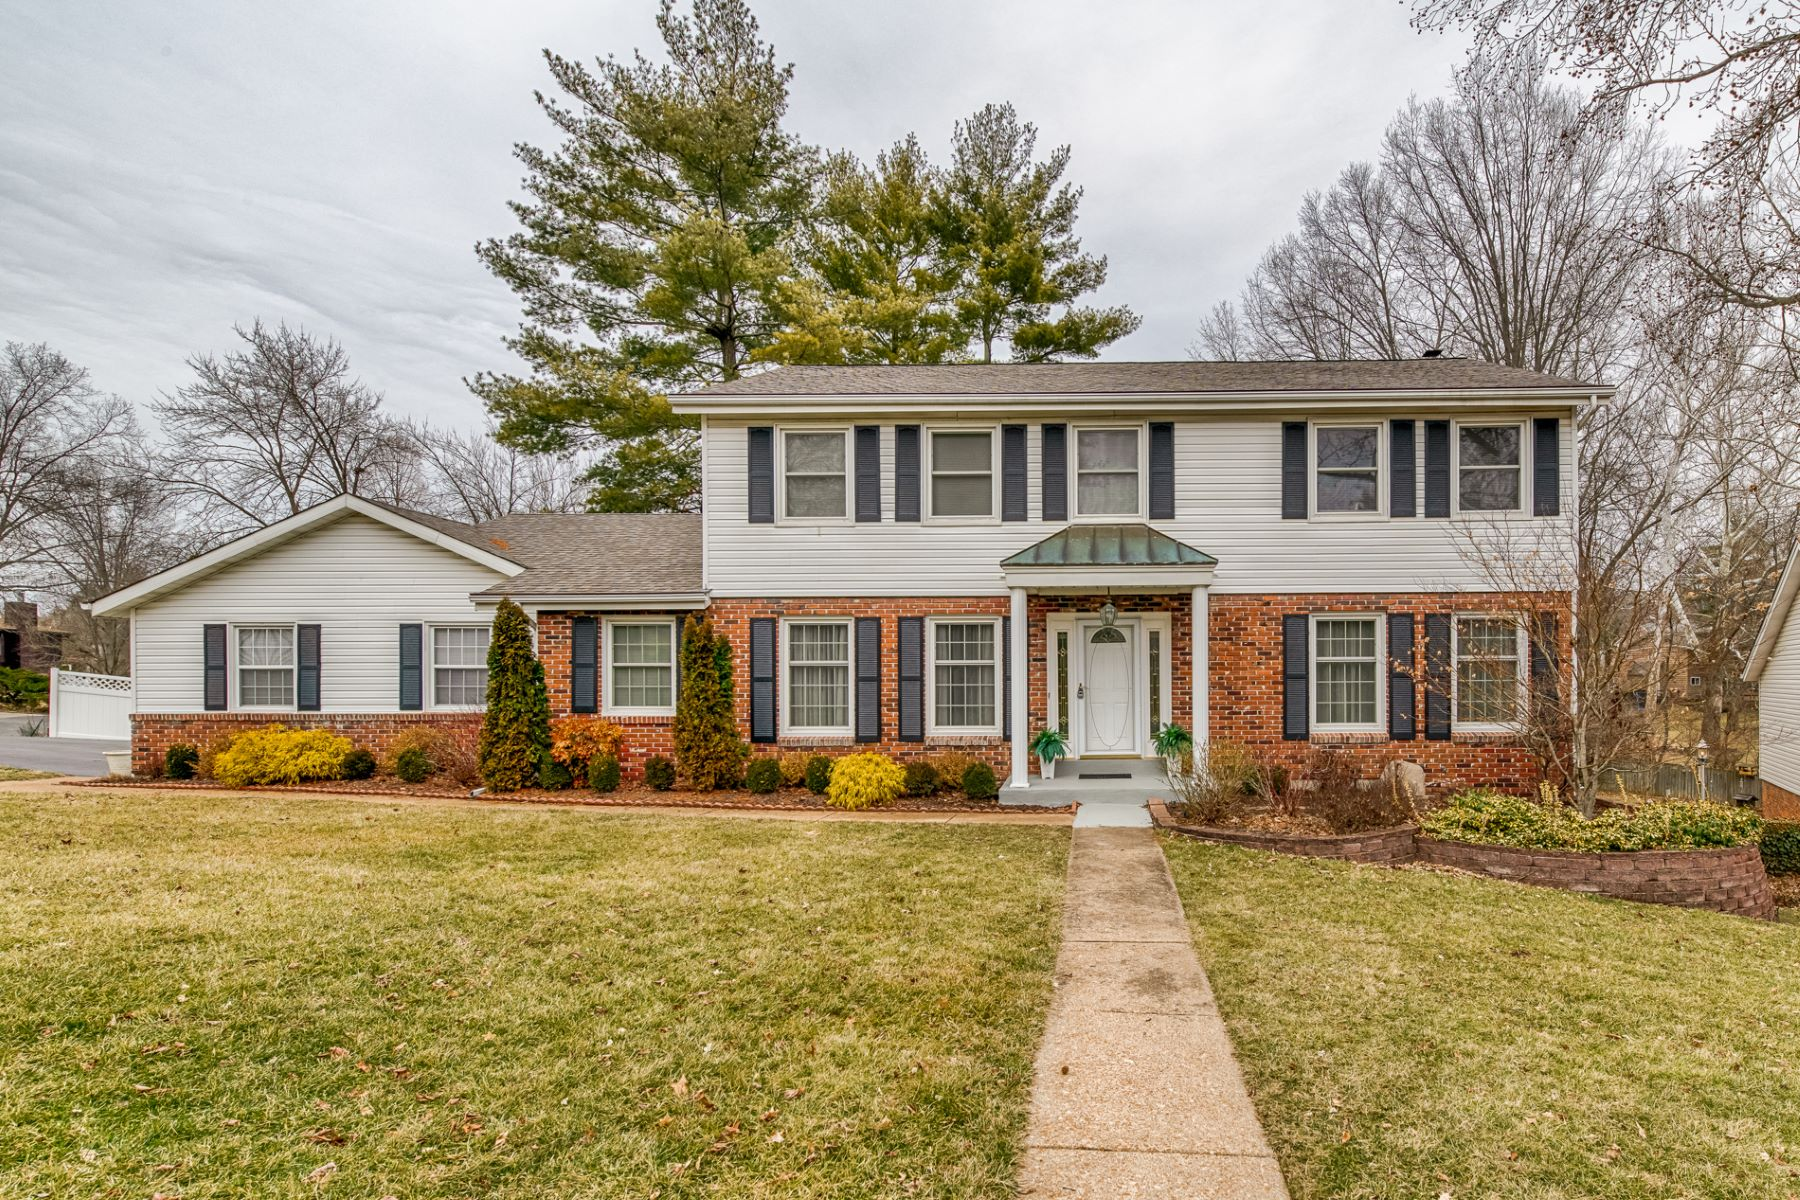 Single Family Home for Sale at Crystal Drive 2124 Crystal Drive St. Louis, Missouri 63131 United States